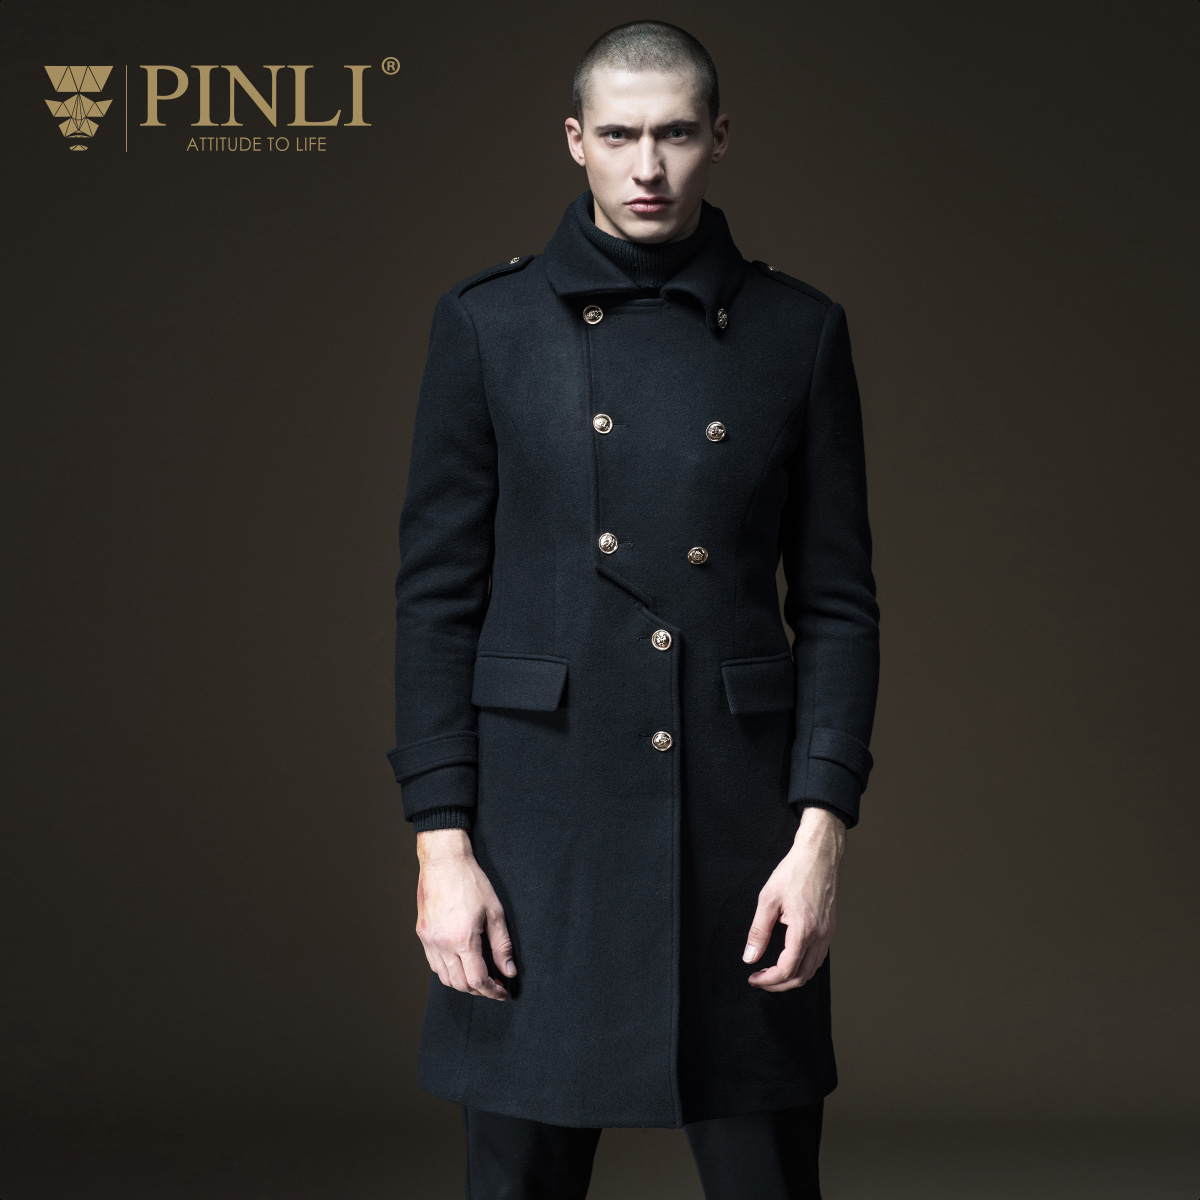 PINLI product made 2017 new men's cultivate morality in the warm autumn long wool coat B173502113 pinli product made of cultivate morality even cap long cotton padded jacket zipper qiu dong outfit b173605400 male coat